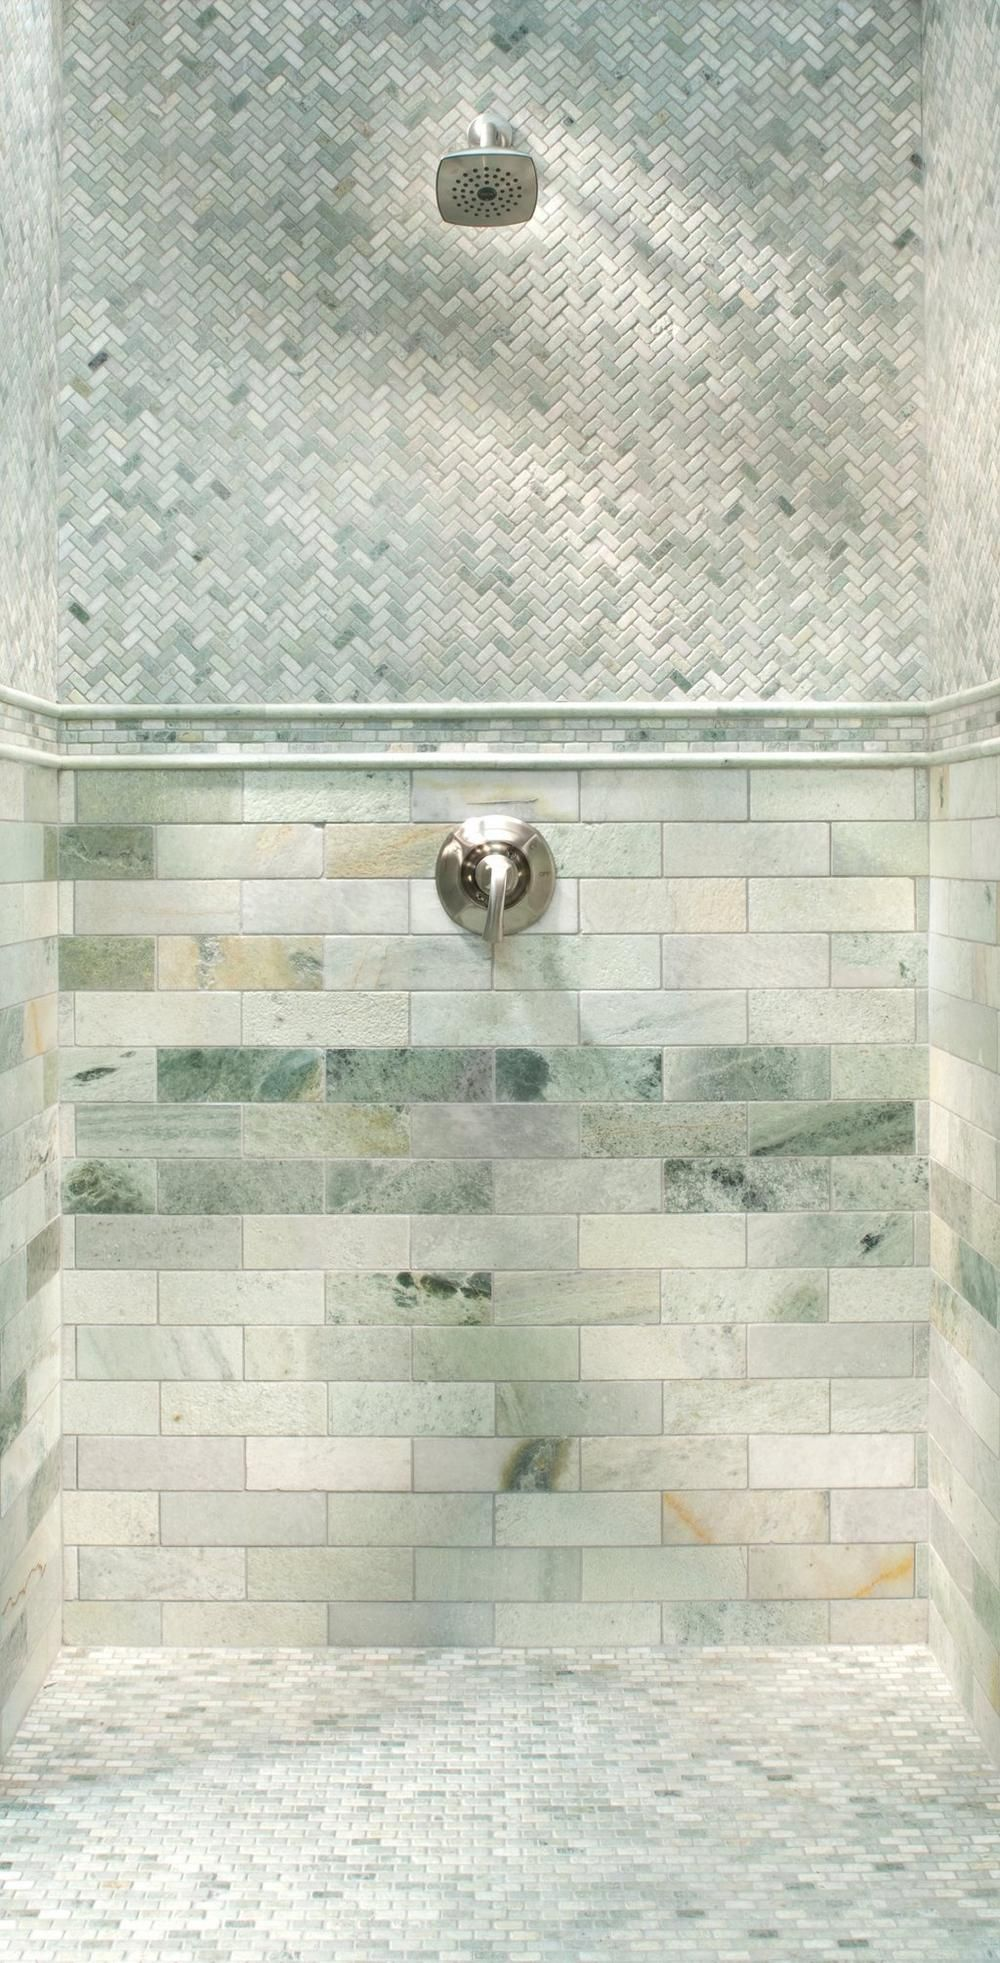 Caribbean green marble tile green marble marble tiles and caribbean caribbean green marble tile dailygadgetfo Choice Image